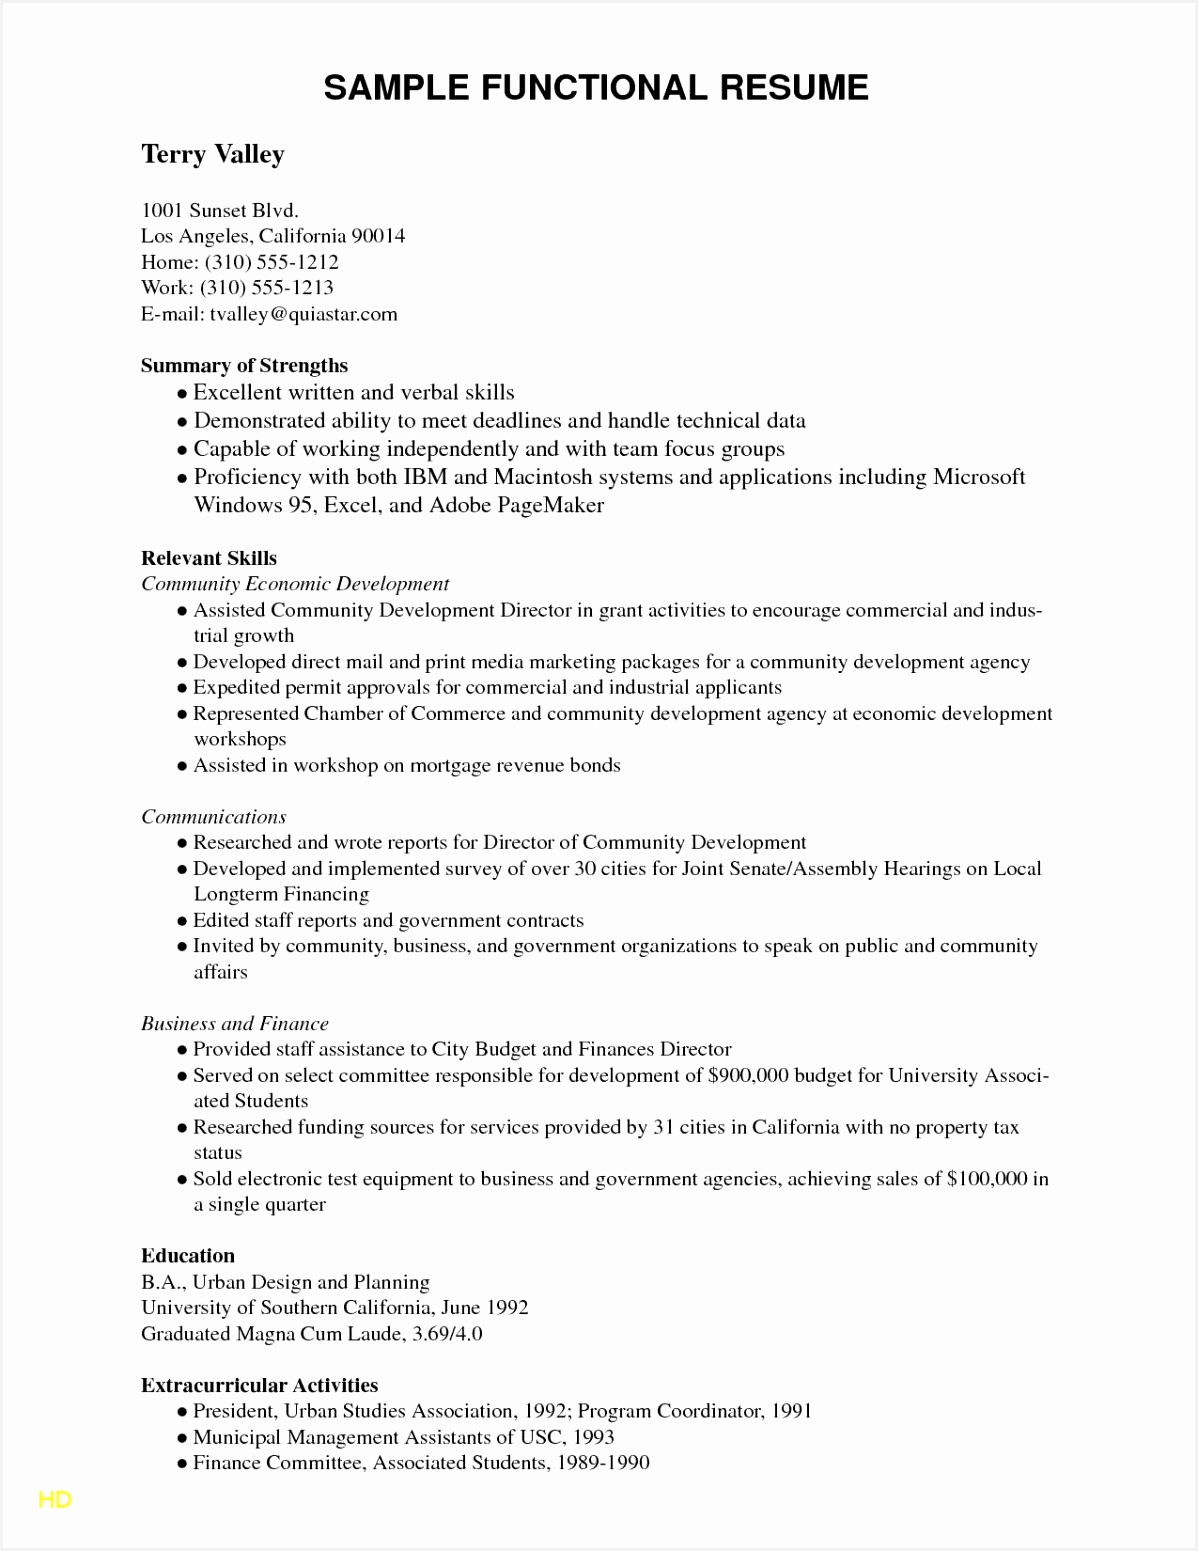 Microsoft Trainer Sample Resume Qxqav Fresh Sample Resume for Ca Articleship Training Free Template Design Of Microsoft Trainer Sample Resume F8yka New Resume Examples Skills Best Skills and Interests Resume Sample